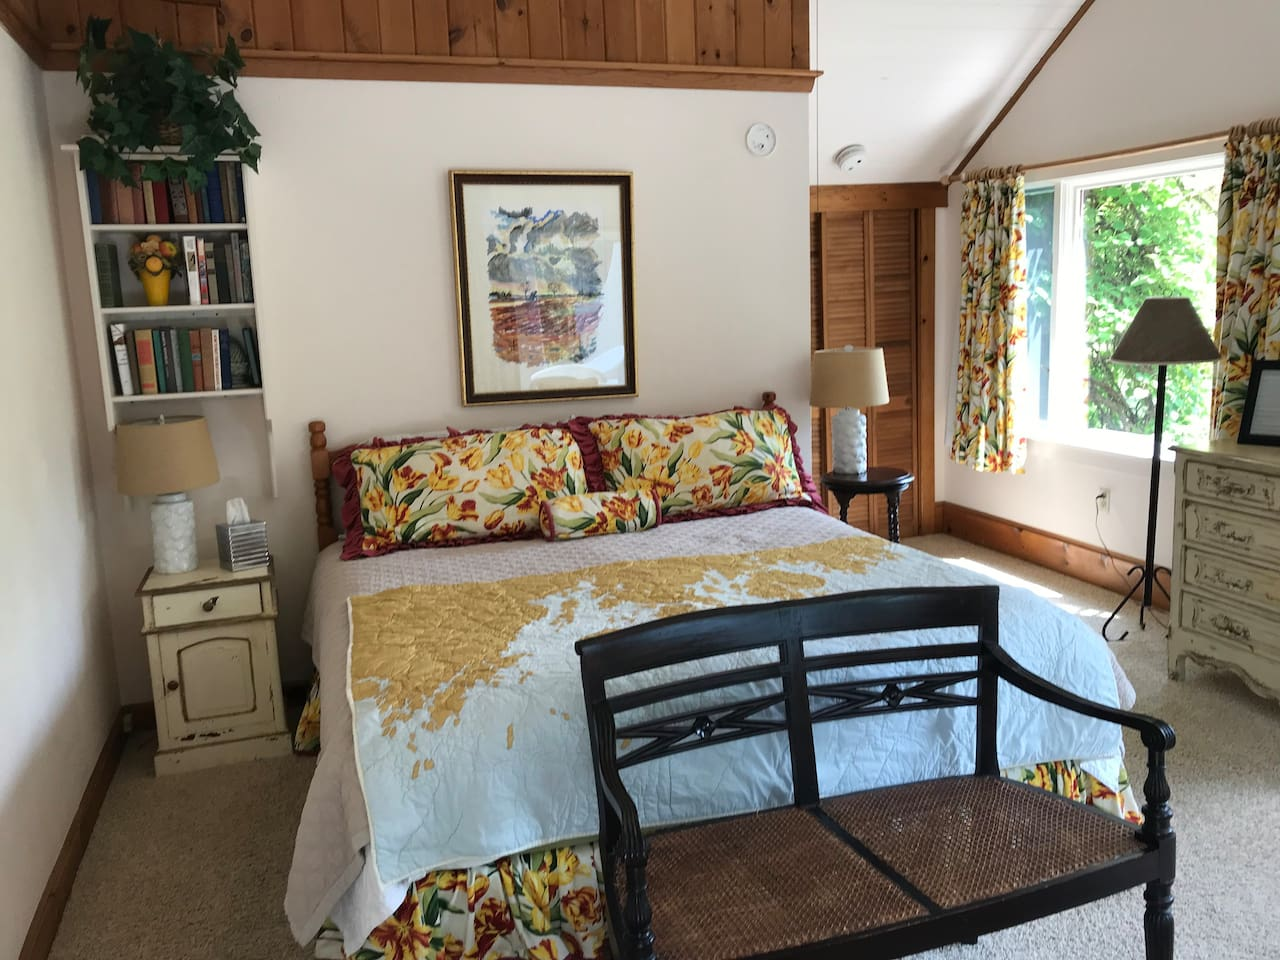 Room 1 with a king bed covered by a handmade quilt of the Maine coast. Comfy!